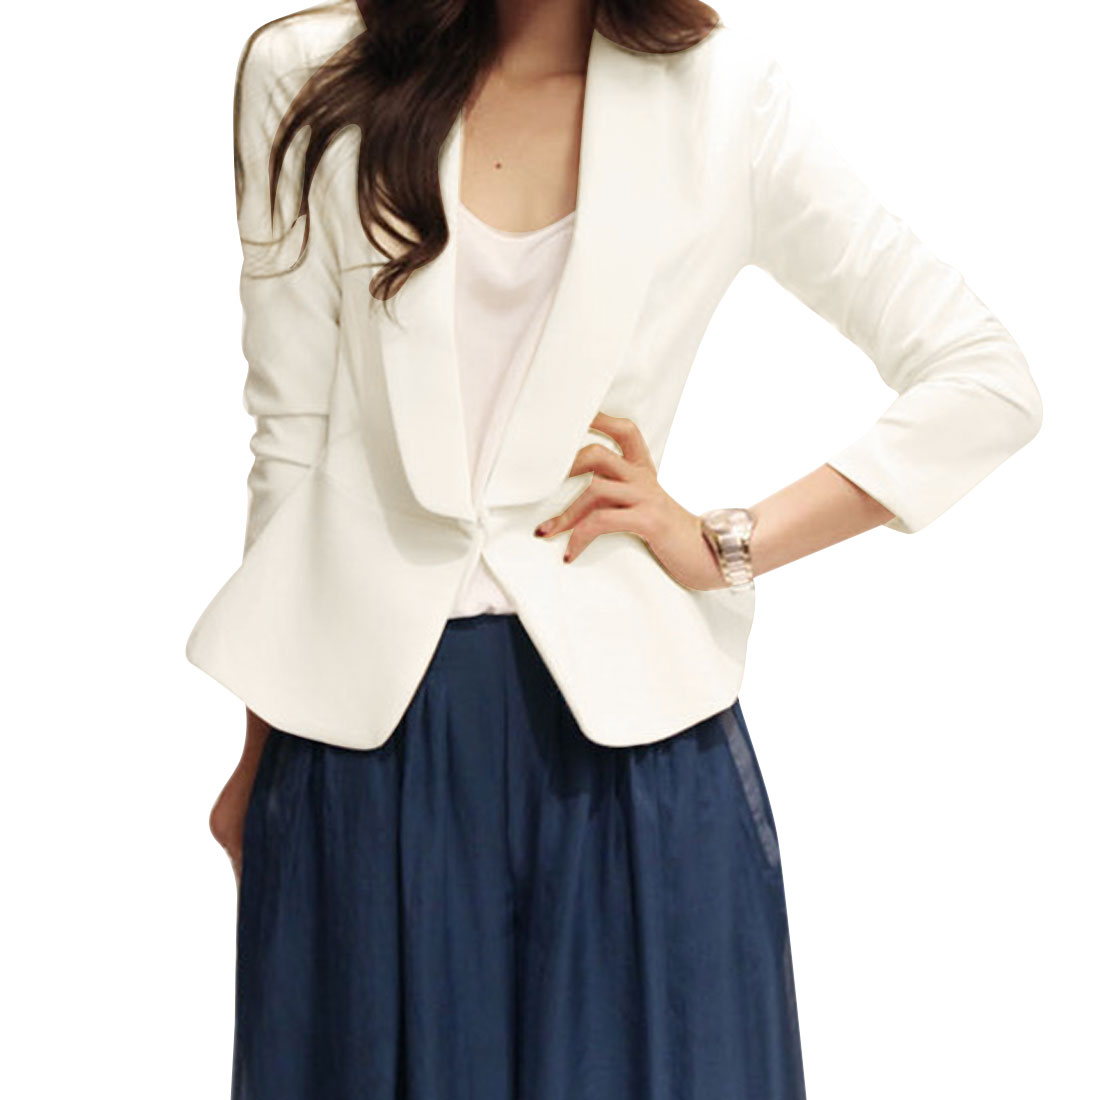 Women's Shawl Lapel Buttonless Stylish Long Sleeve XS White Blazer Jacket